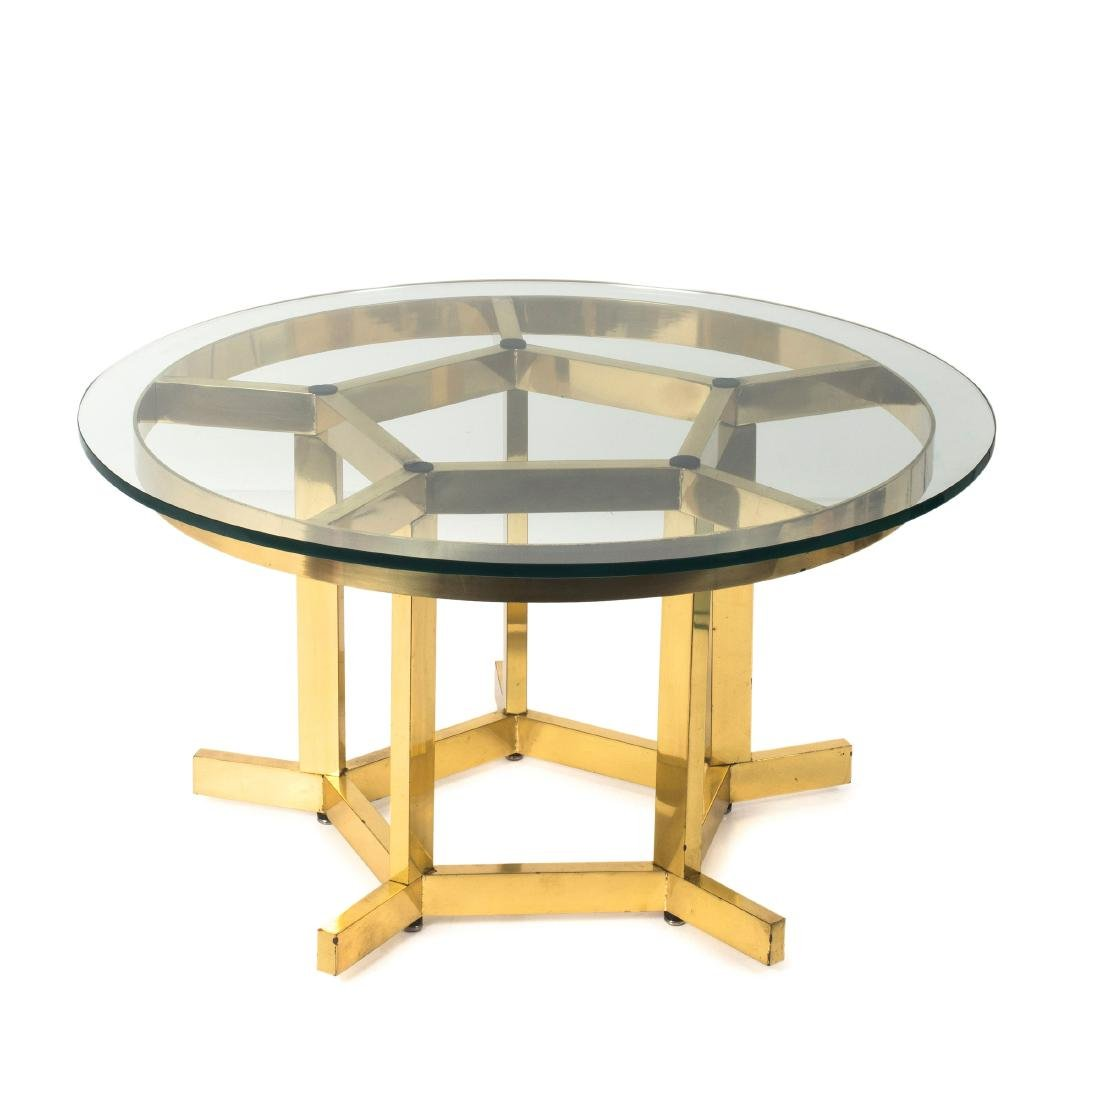 Coffee table, c. 1970